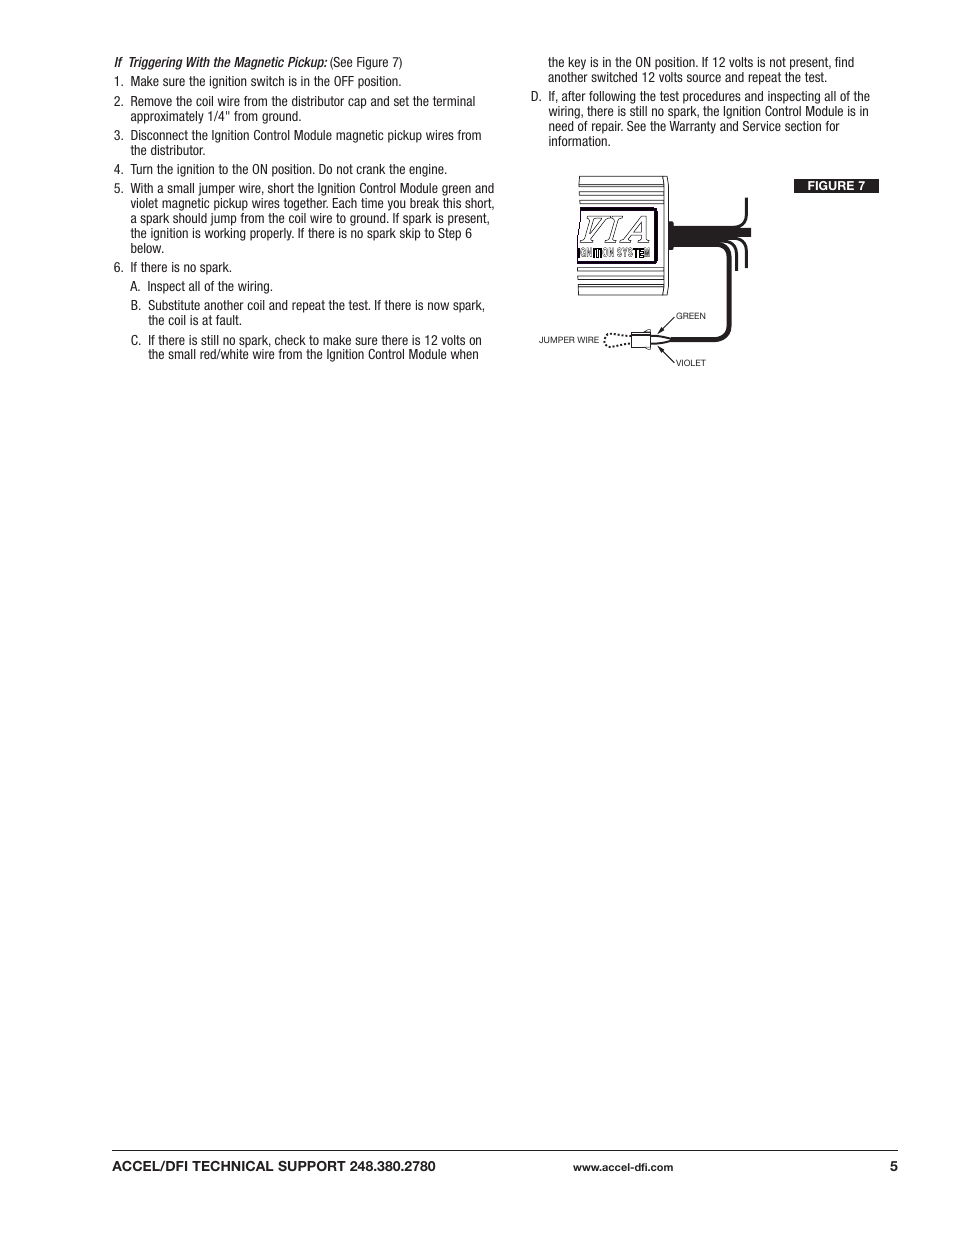 Mallory Ignition ACCEL DFI 6A Electronic Ignition Control Module for  Distributor Equipped Engines 75606 User Manual